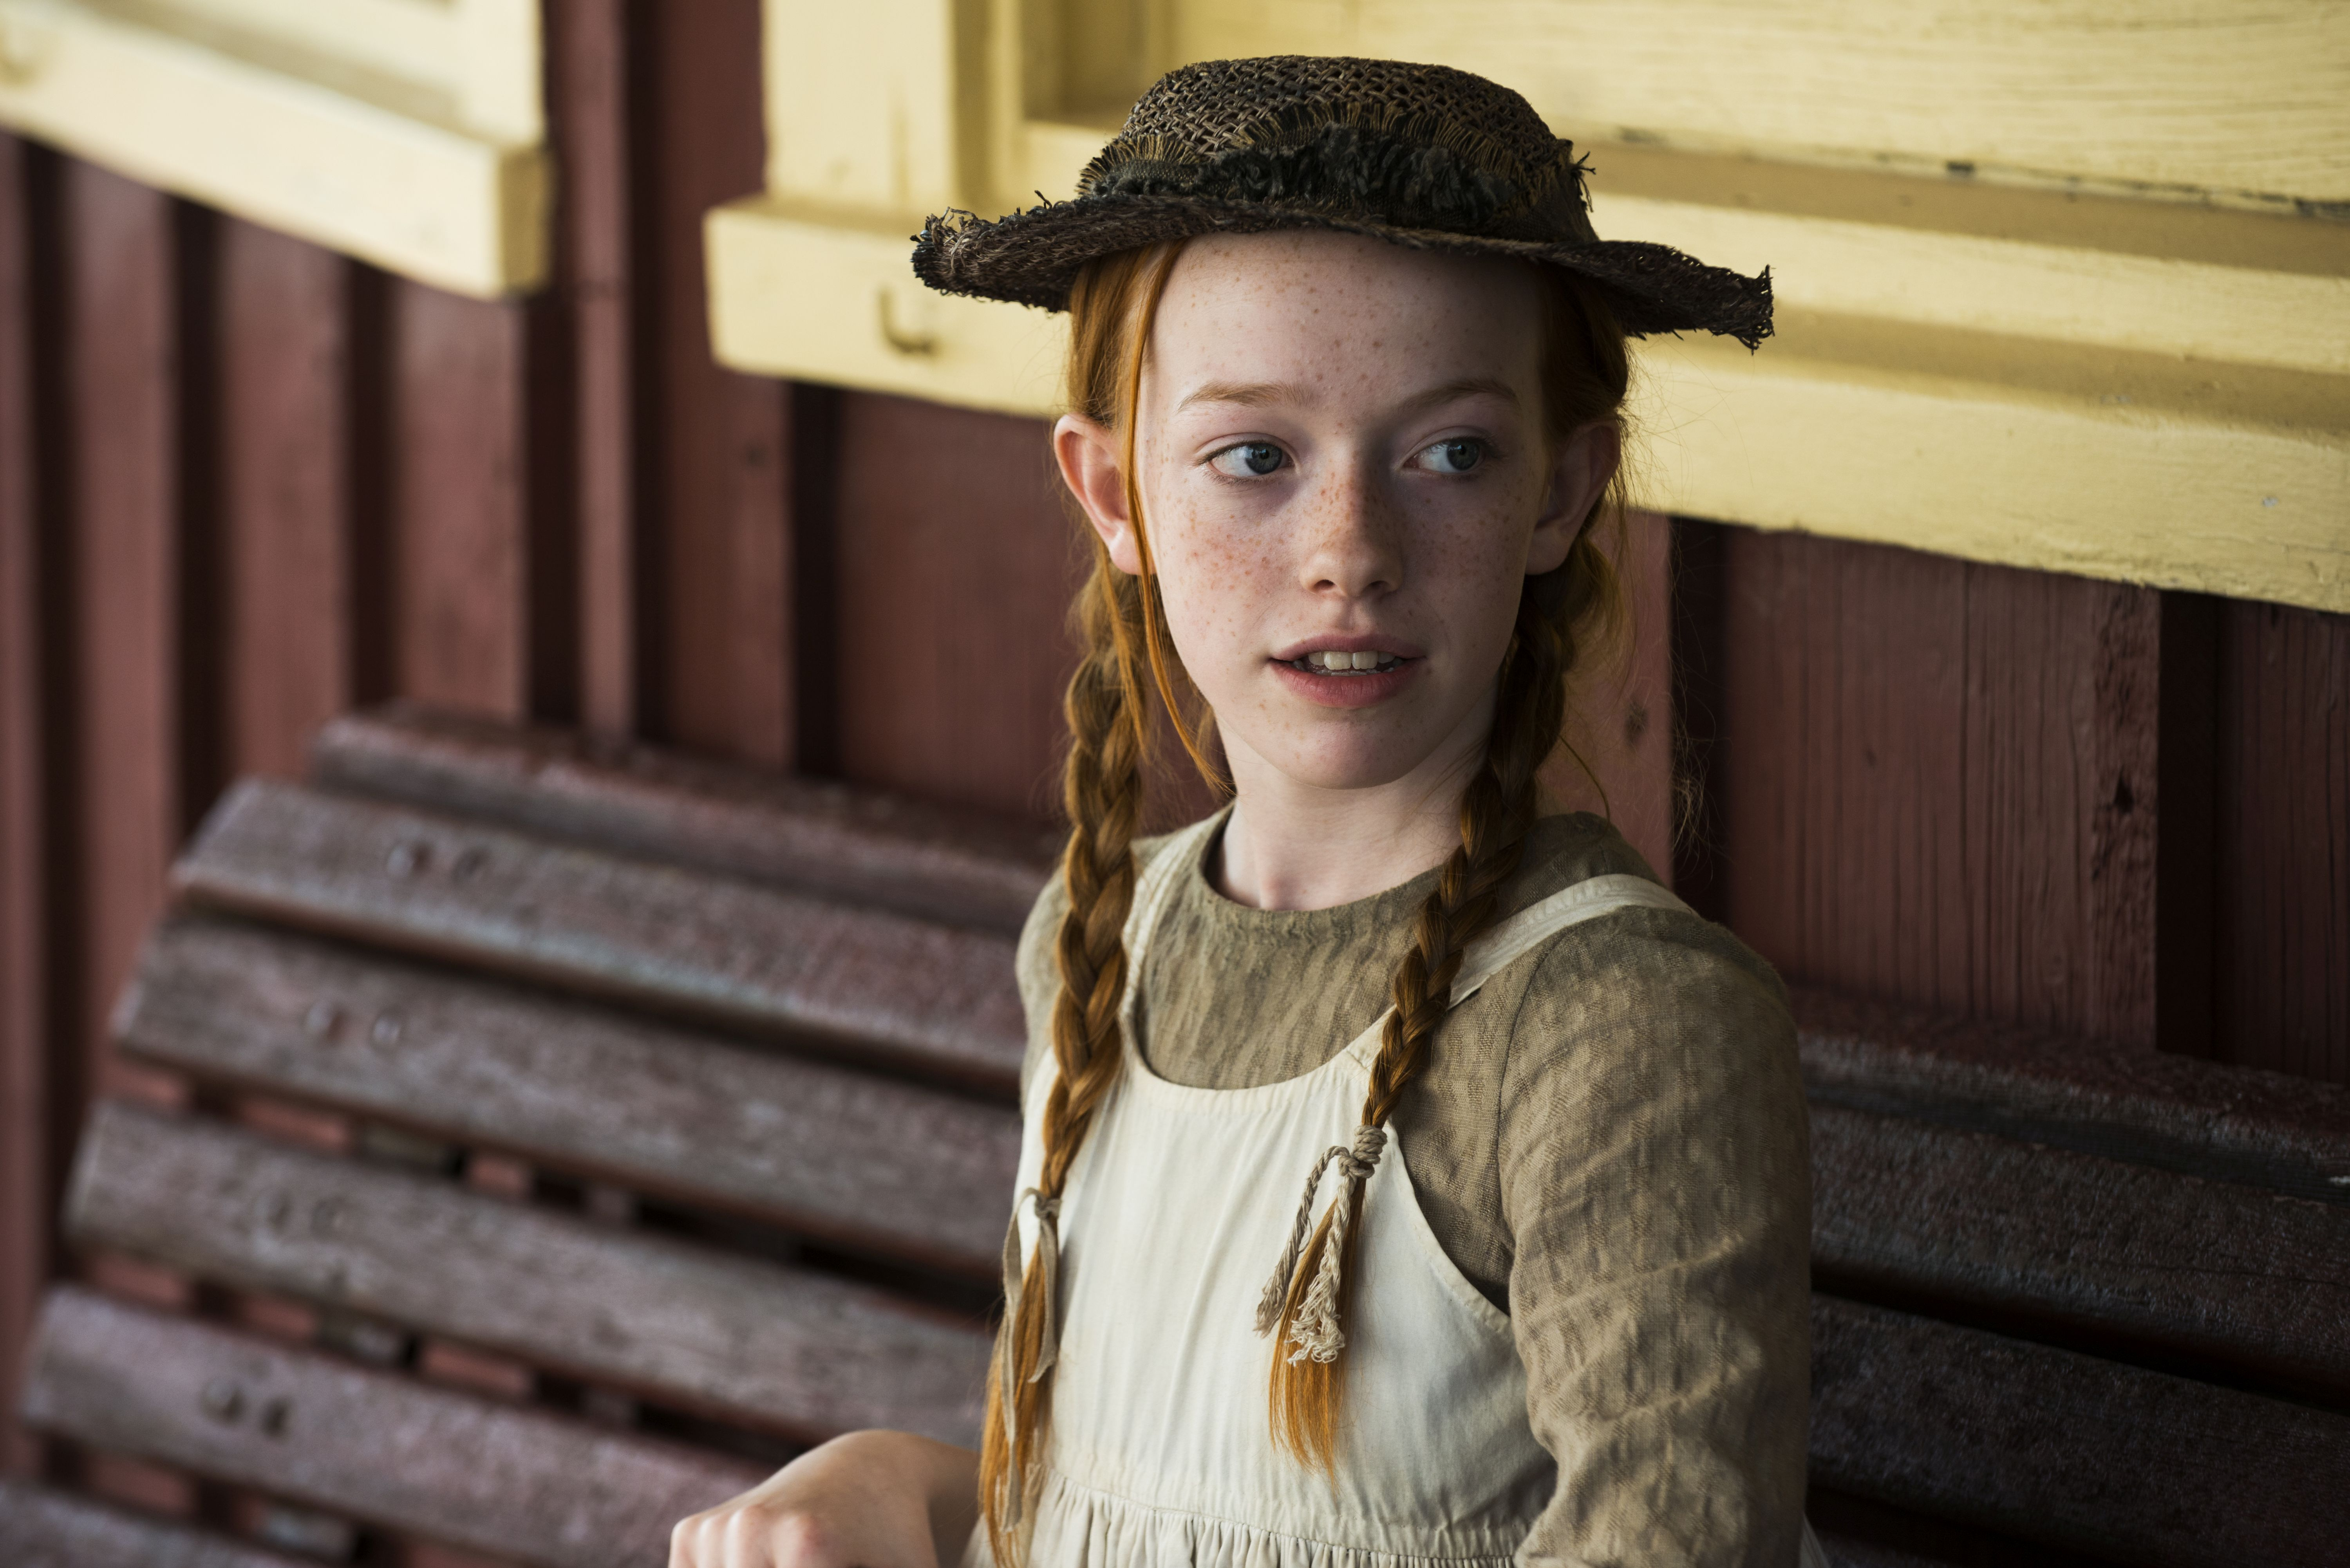 who played anne of green gables in the tv series